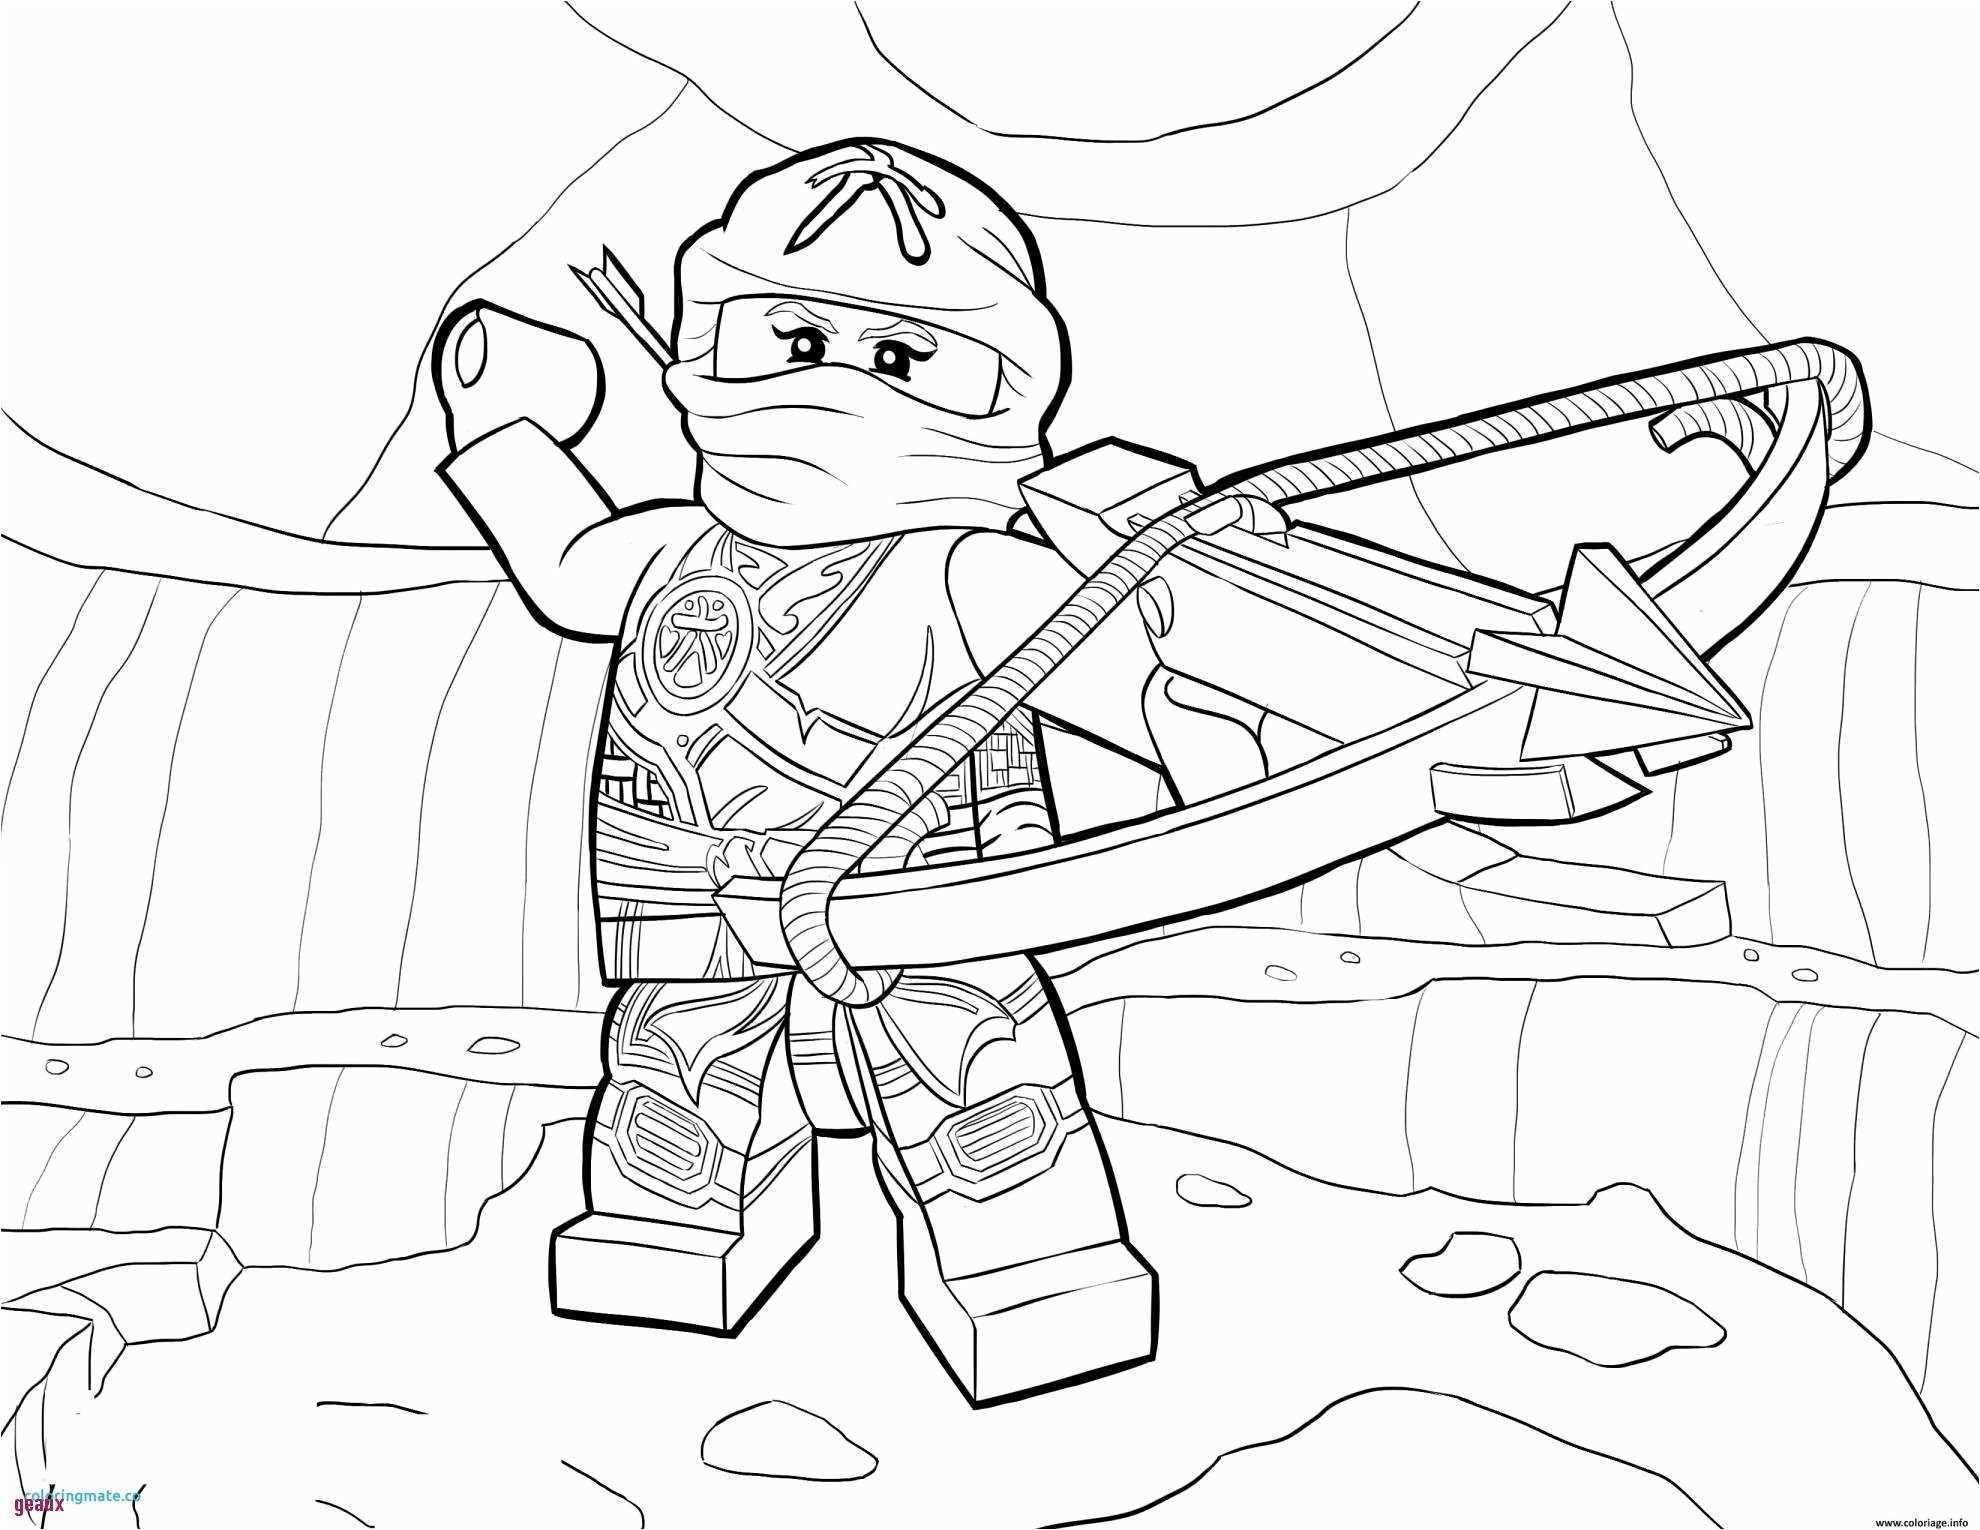 Coloriage Stella Mandala Disney Coloriage Iron Man Lego Lovely Coloriage Pixel Star Wars Ins Fairy Coloring Pages Monster Coloring Pages Ninjago Coloring Pages